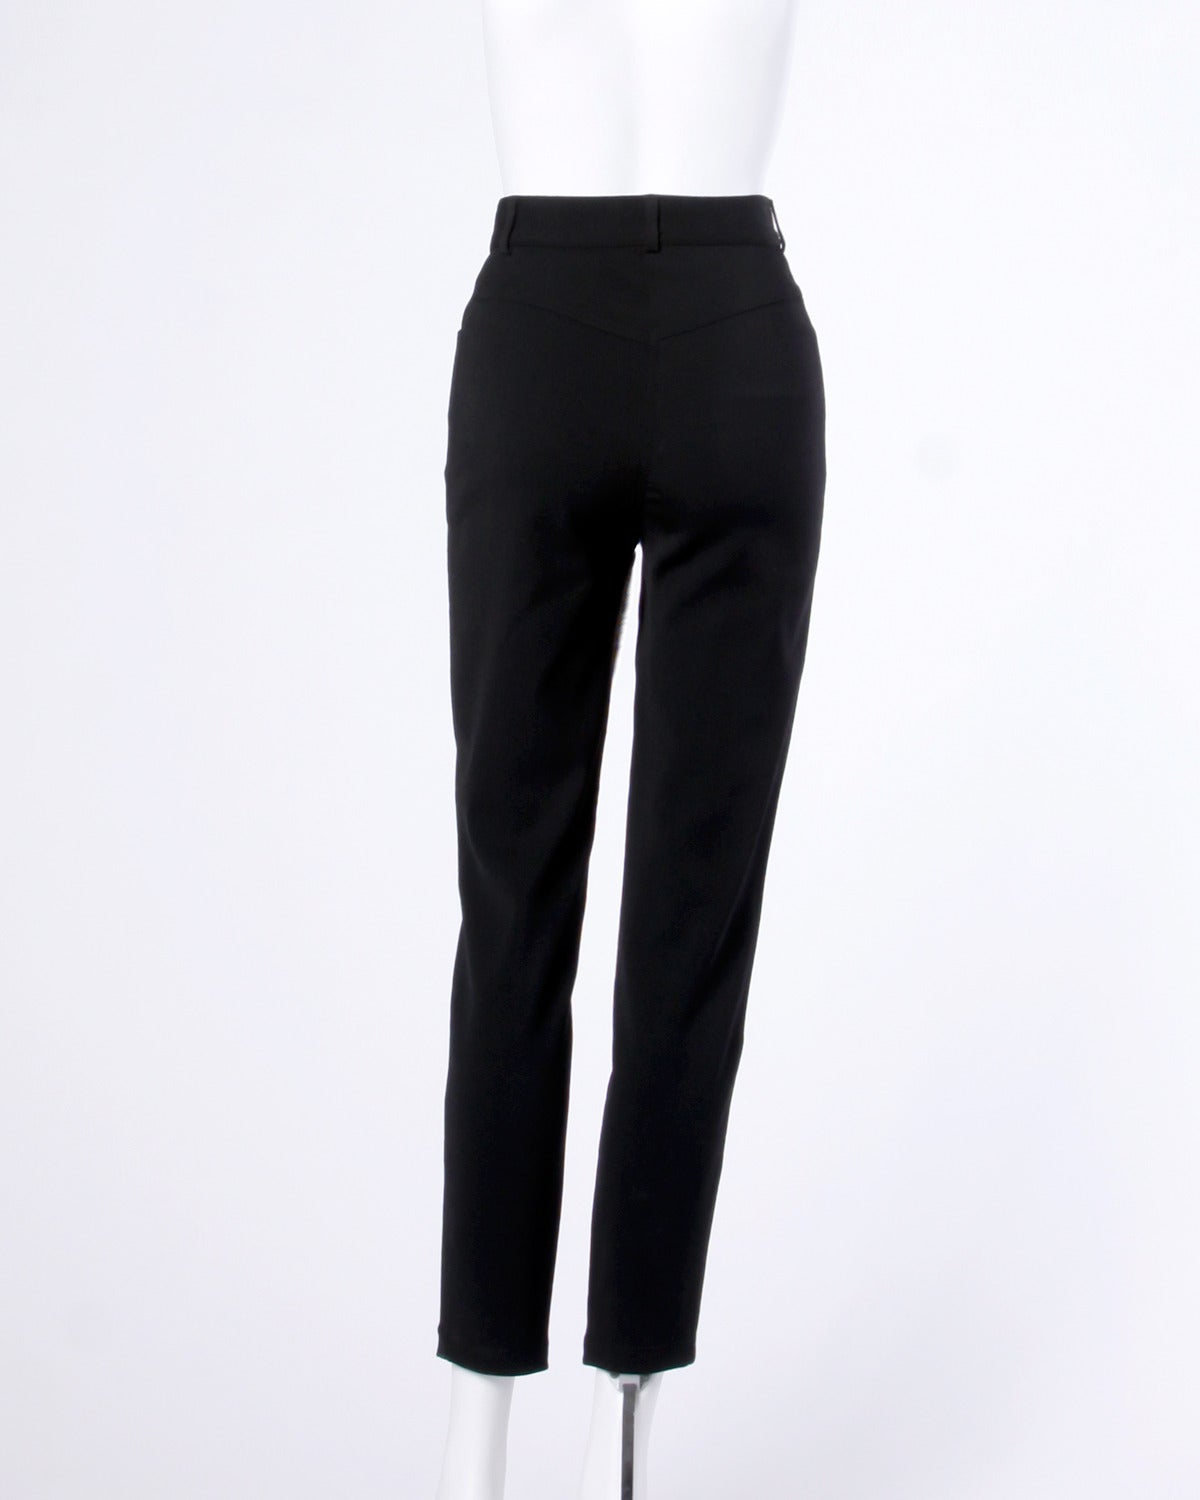 Women's Moschino Vintage Black Wool High Waisted Pants with Heart Button For Sale